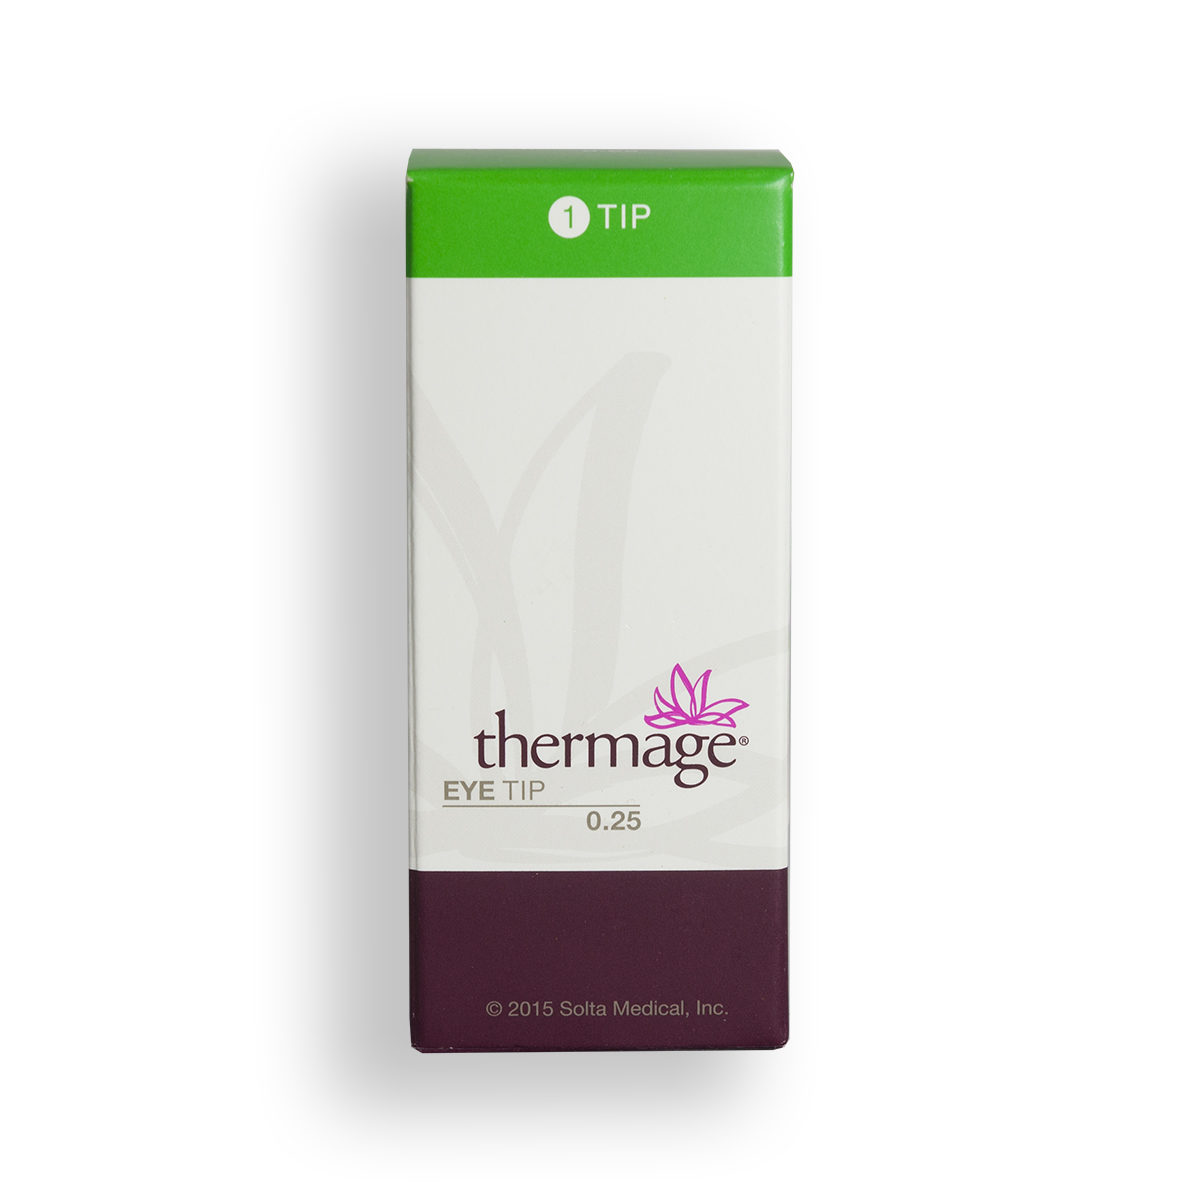 Thermage Eye Tip